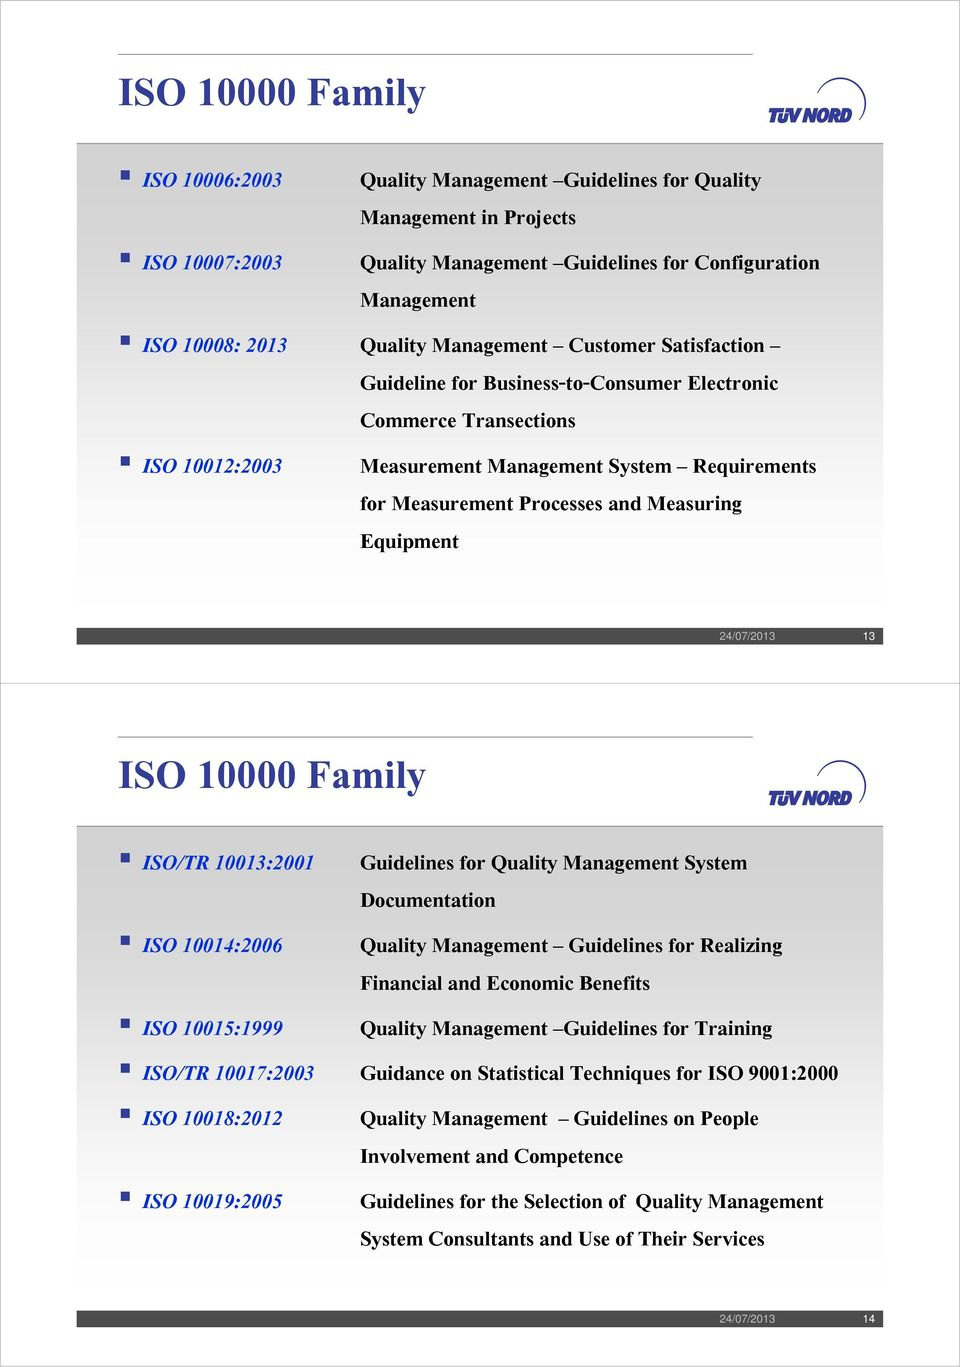 Equipment 24/07/2013 13 ISO 10000 Family ISO/TR 10013:2001 Guidelines for Quality Management System Documentation ISO 10014:2006 Quality Management Guidelines for Realizing Financial and Economic